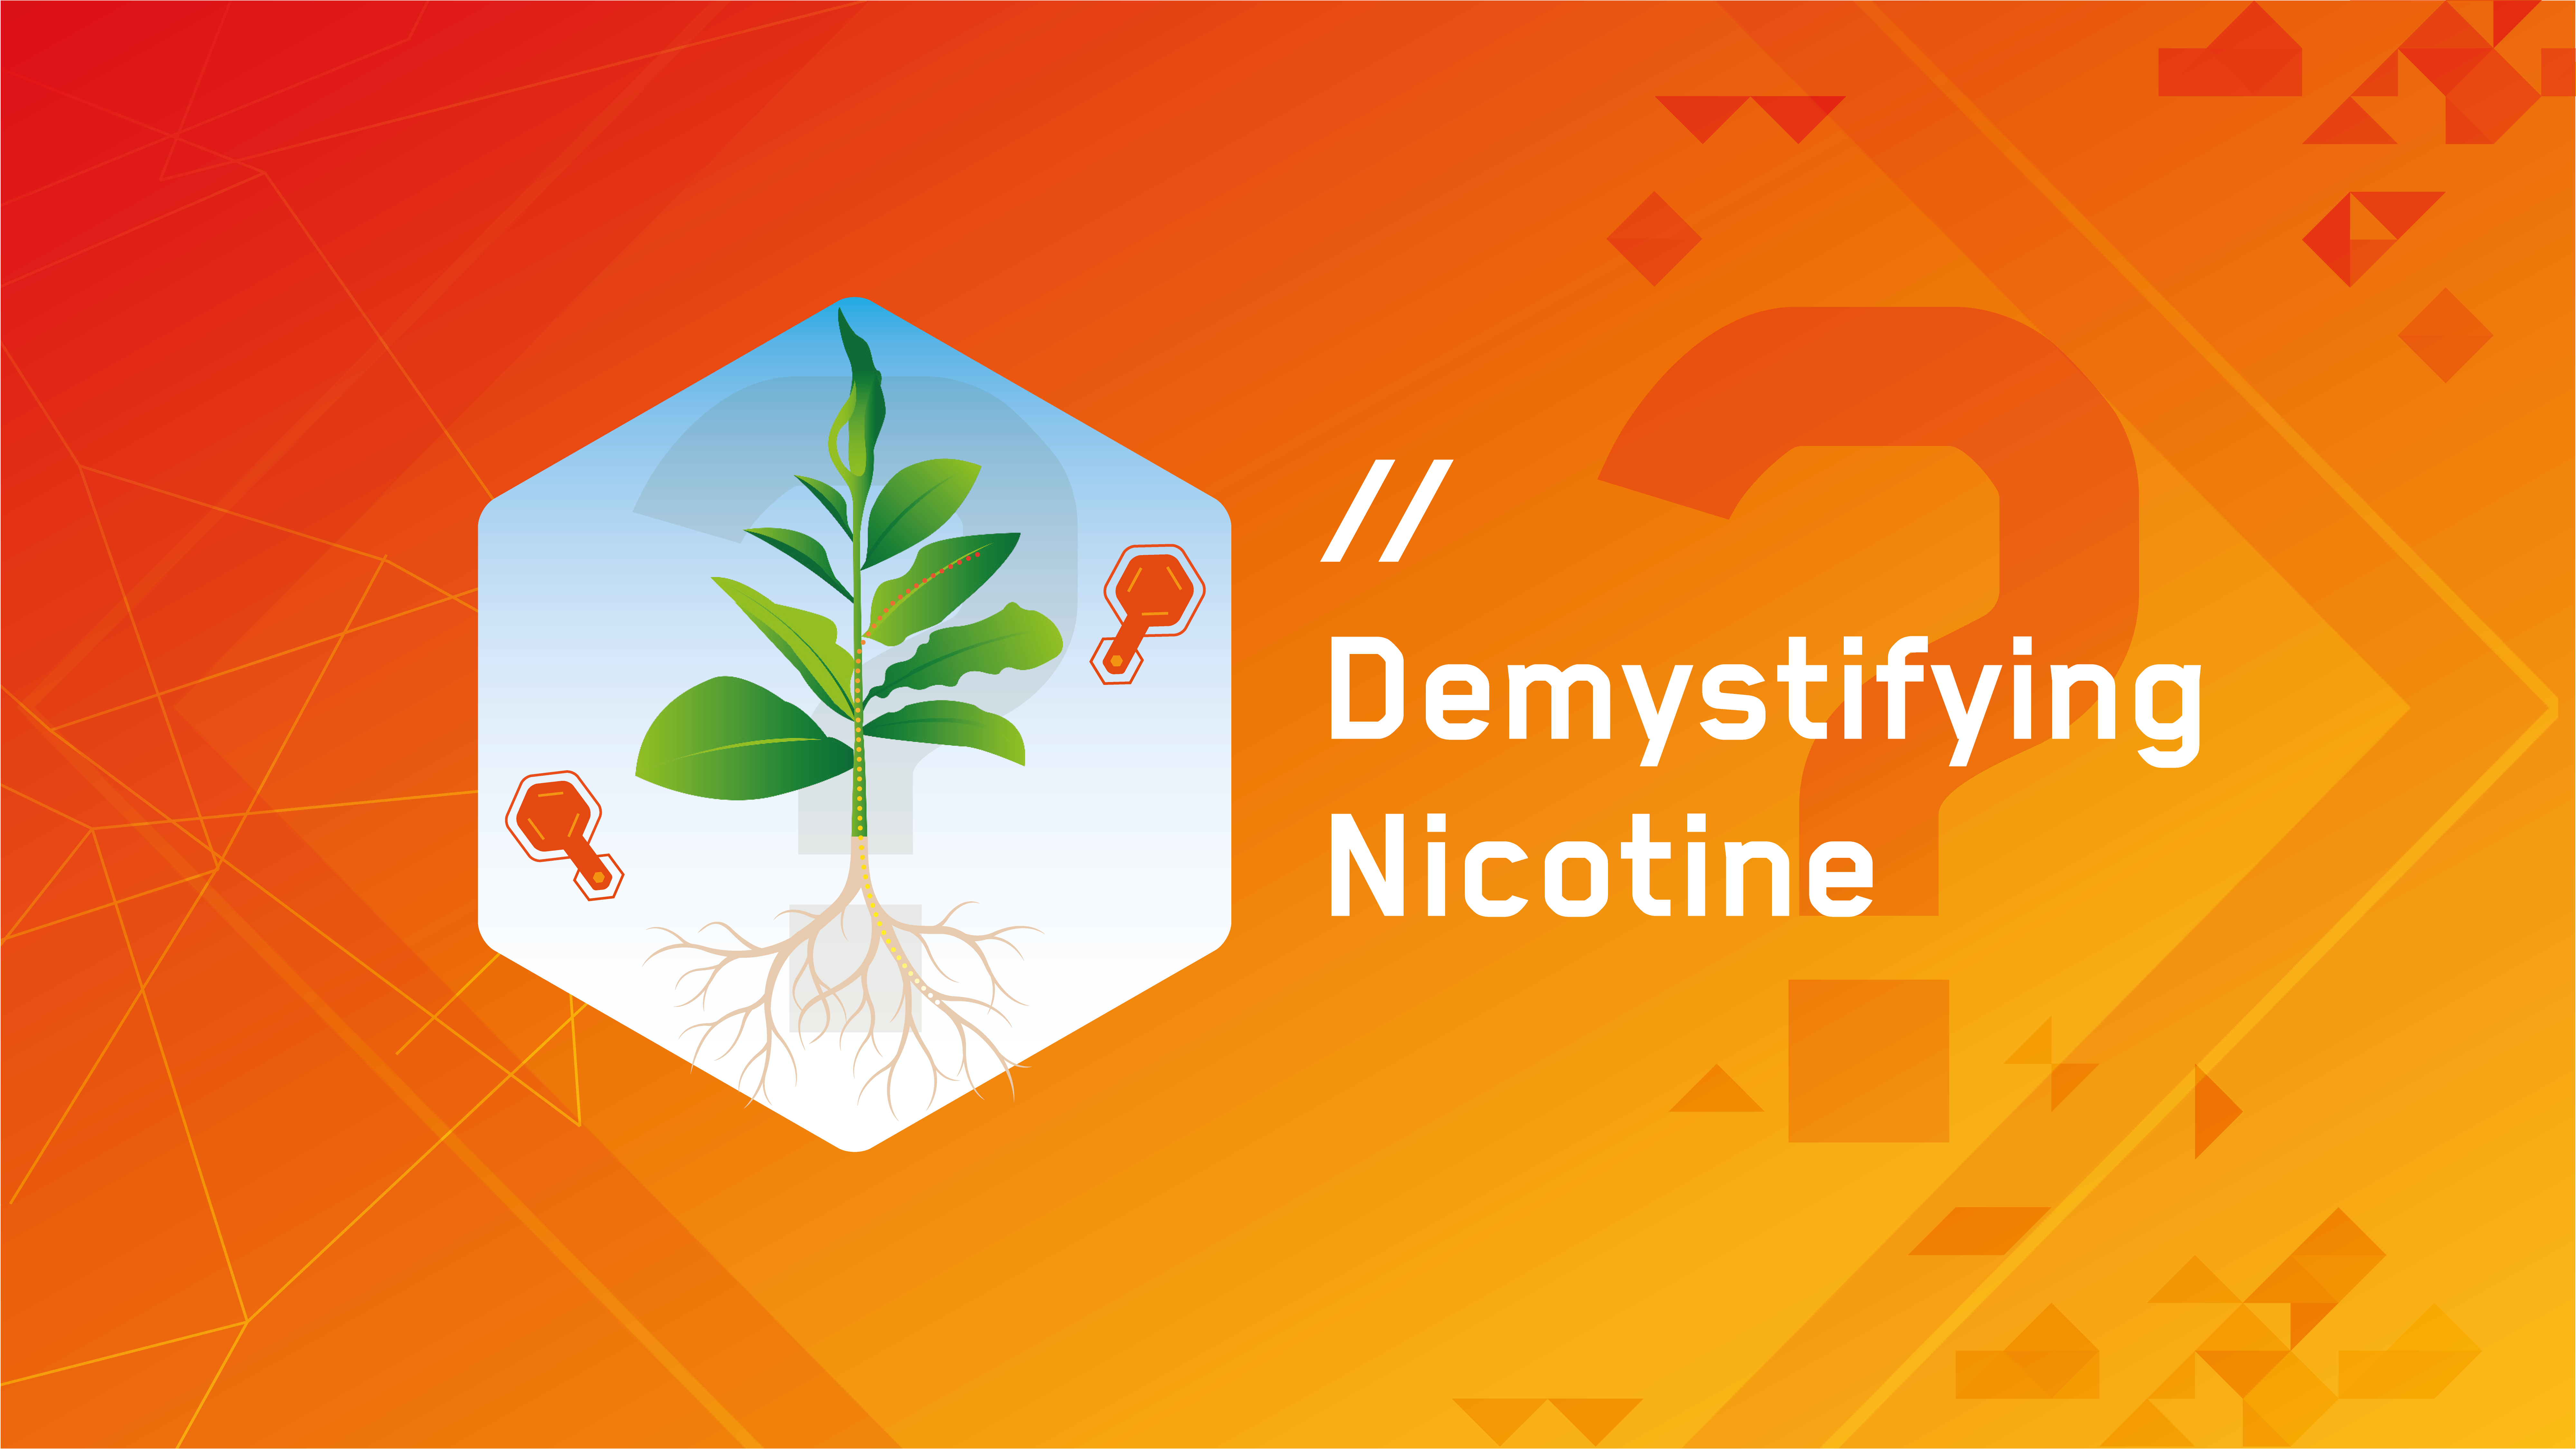 Video: Demystifying nicotine